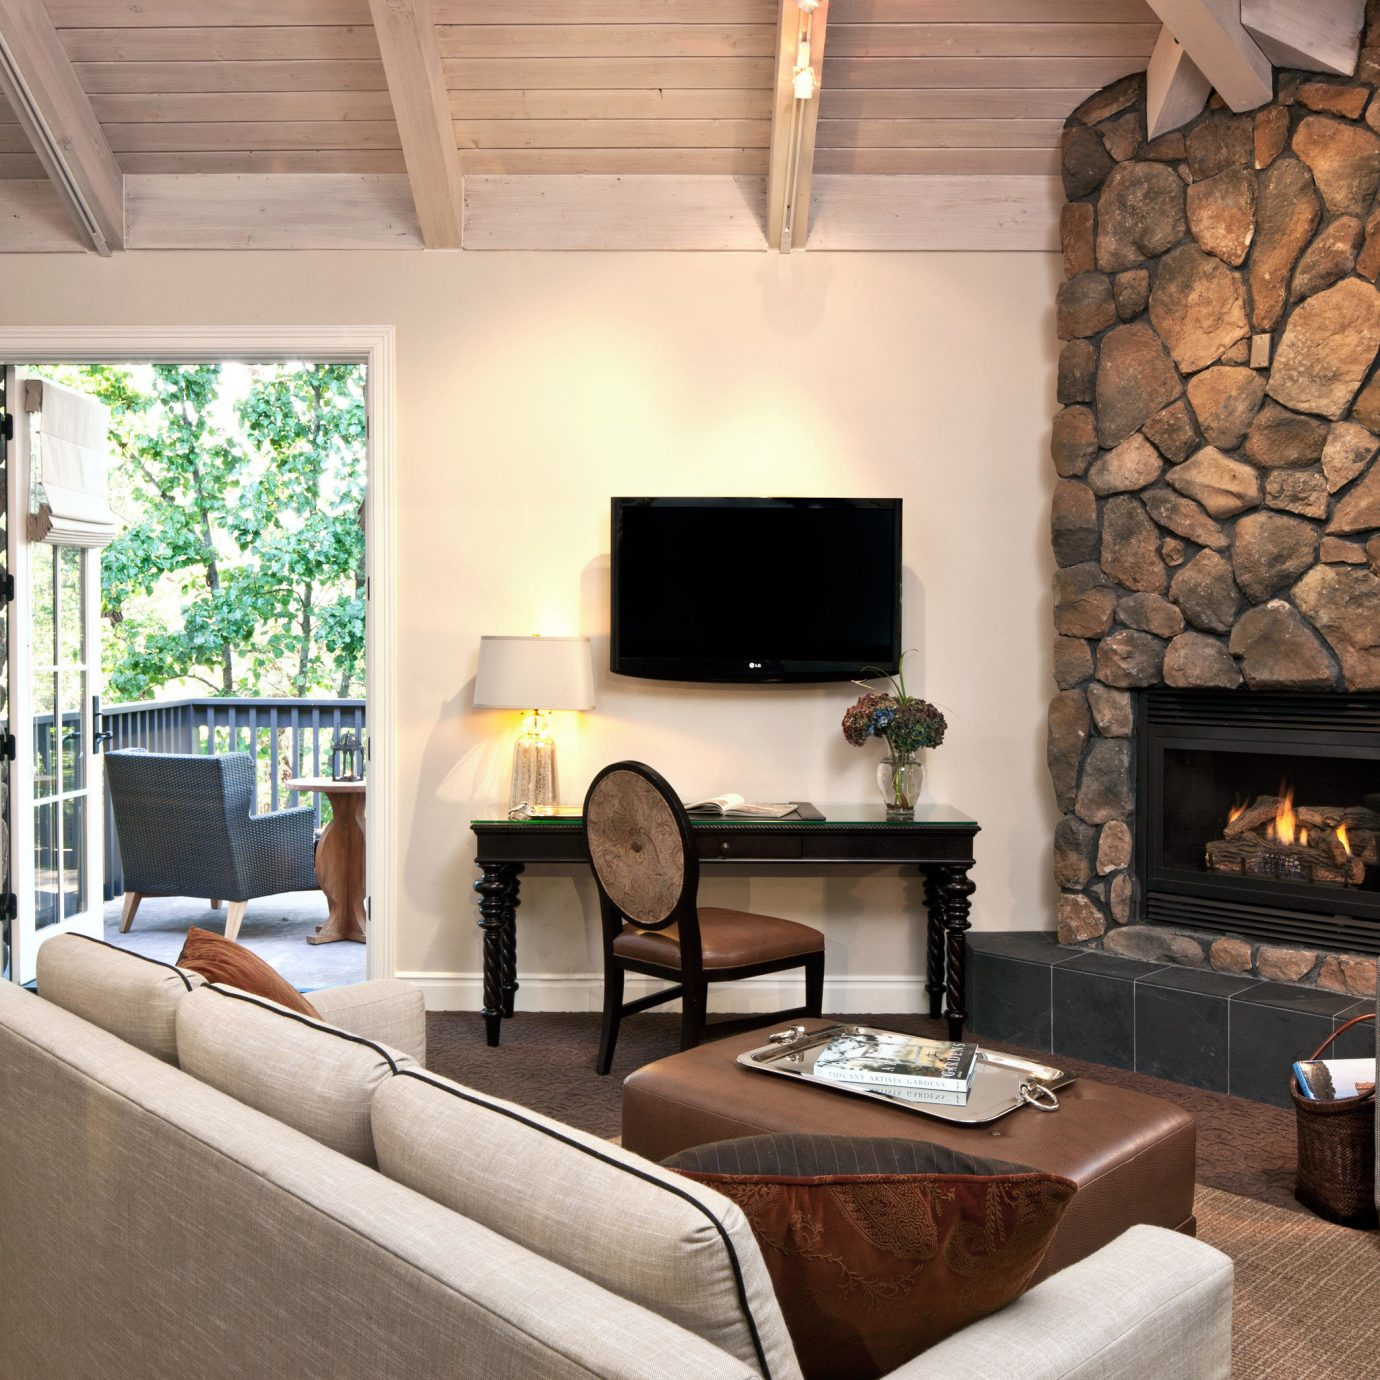 Balcony Fireplace Rustic Scenic views Suite sofa living room property fire home hearth hardwood cottage flat Bedroom stone